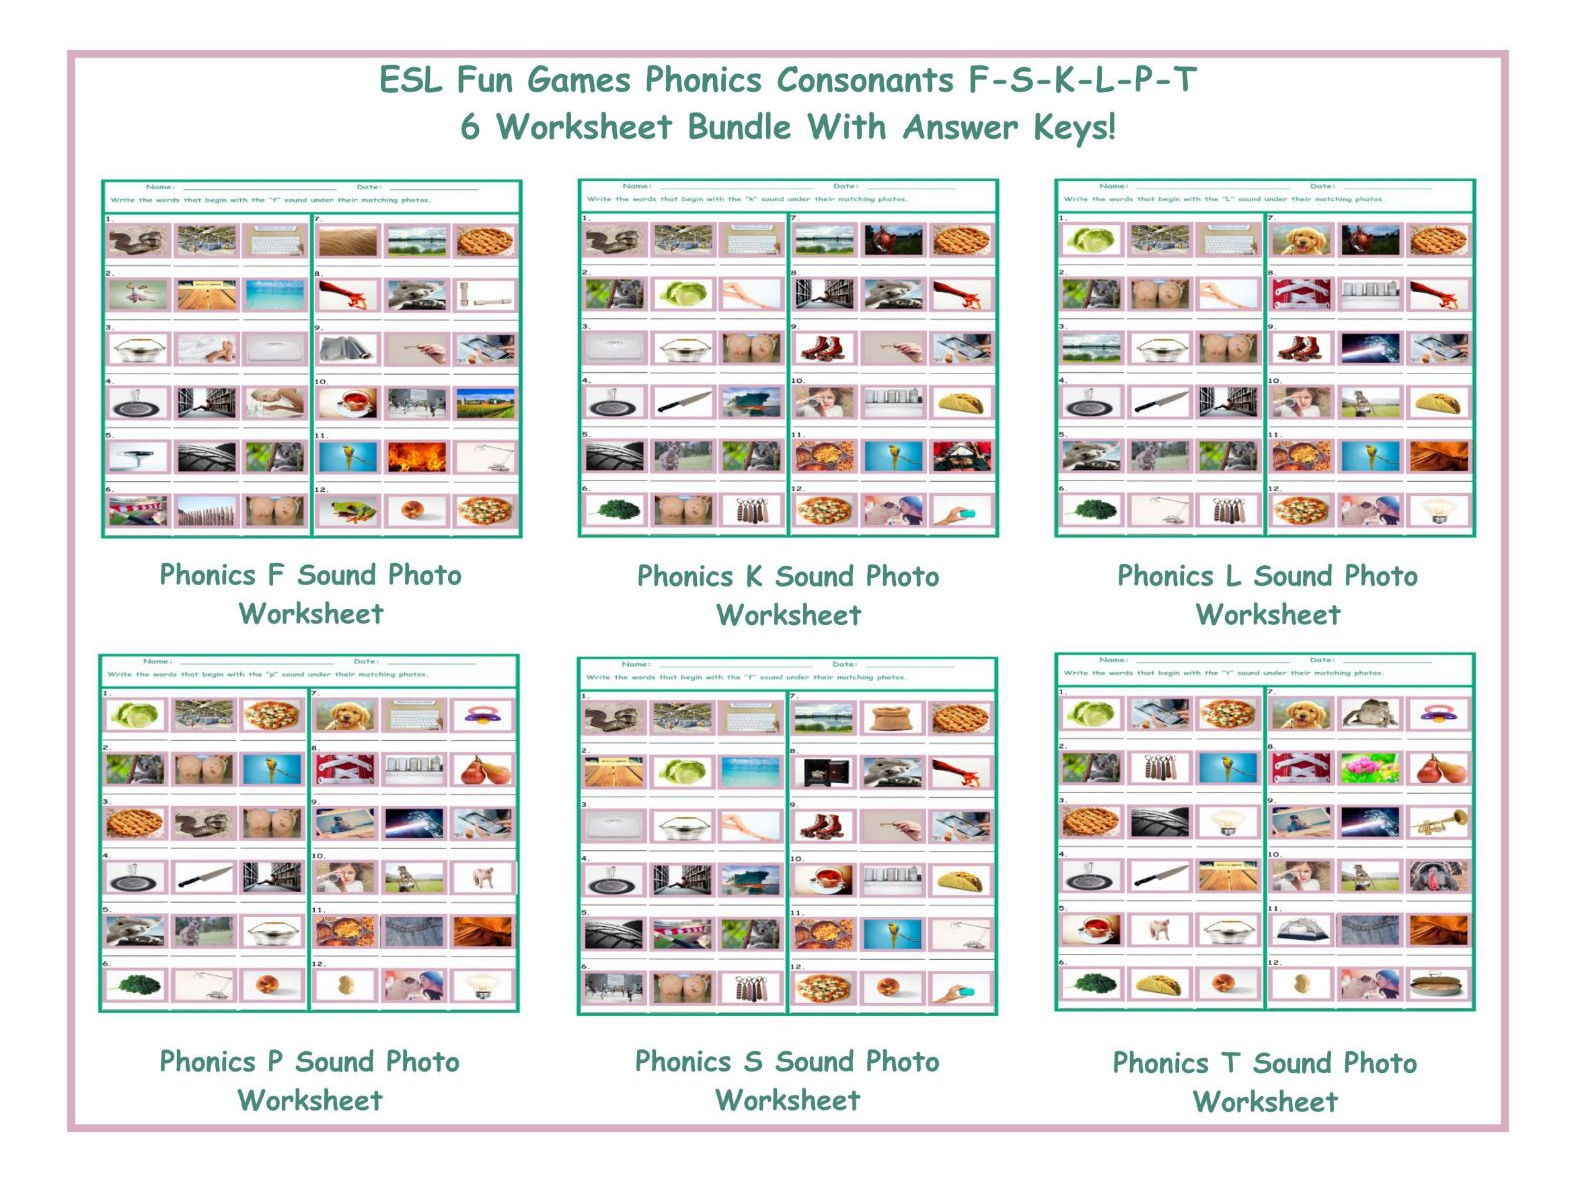 Phonics L Sound Photo Worksheet By Eslfungames Teaching Resources